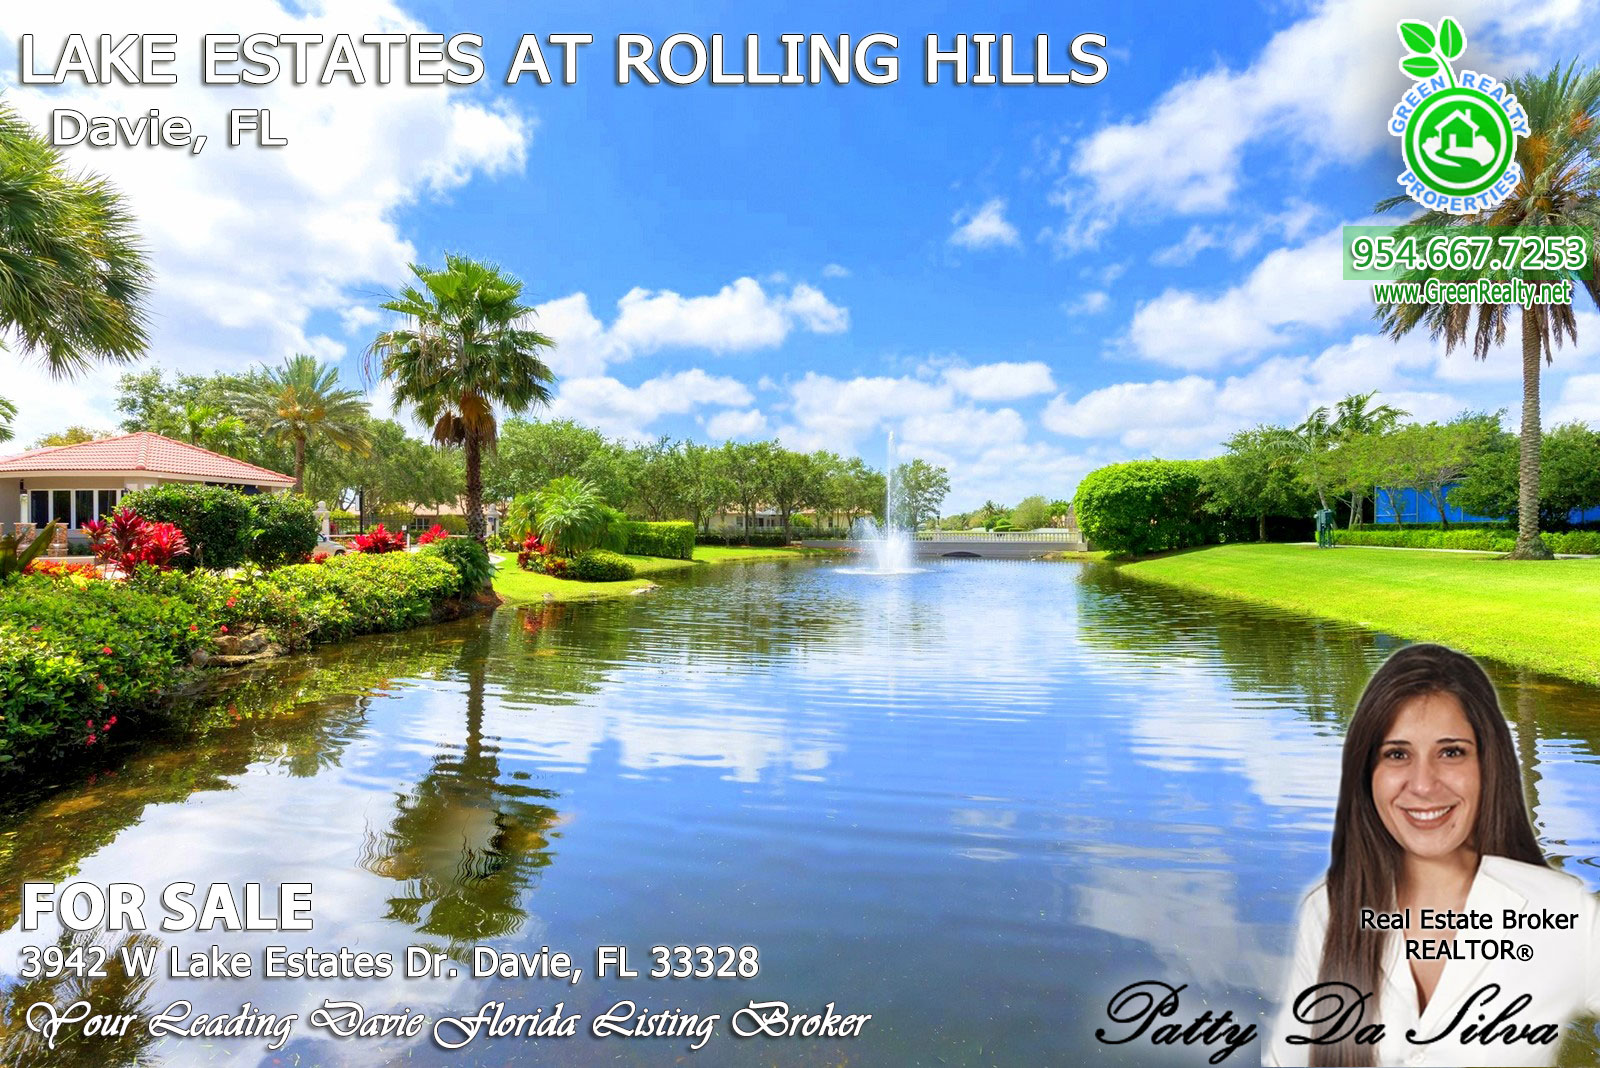 3942-W-Lake-Estates-Dr----Davie-FL-33328-(24)